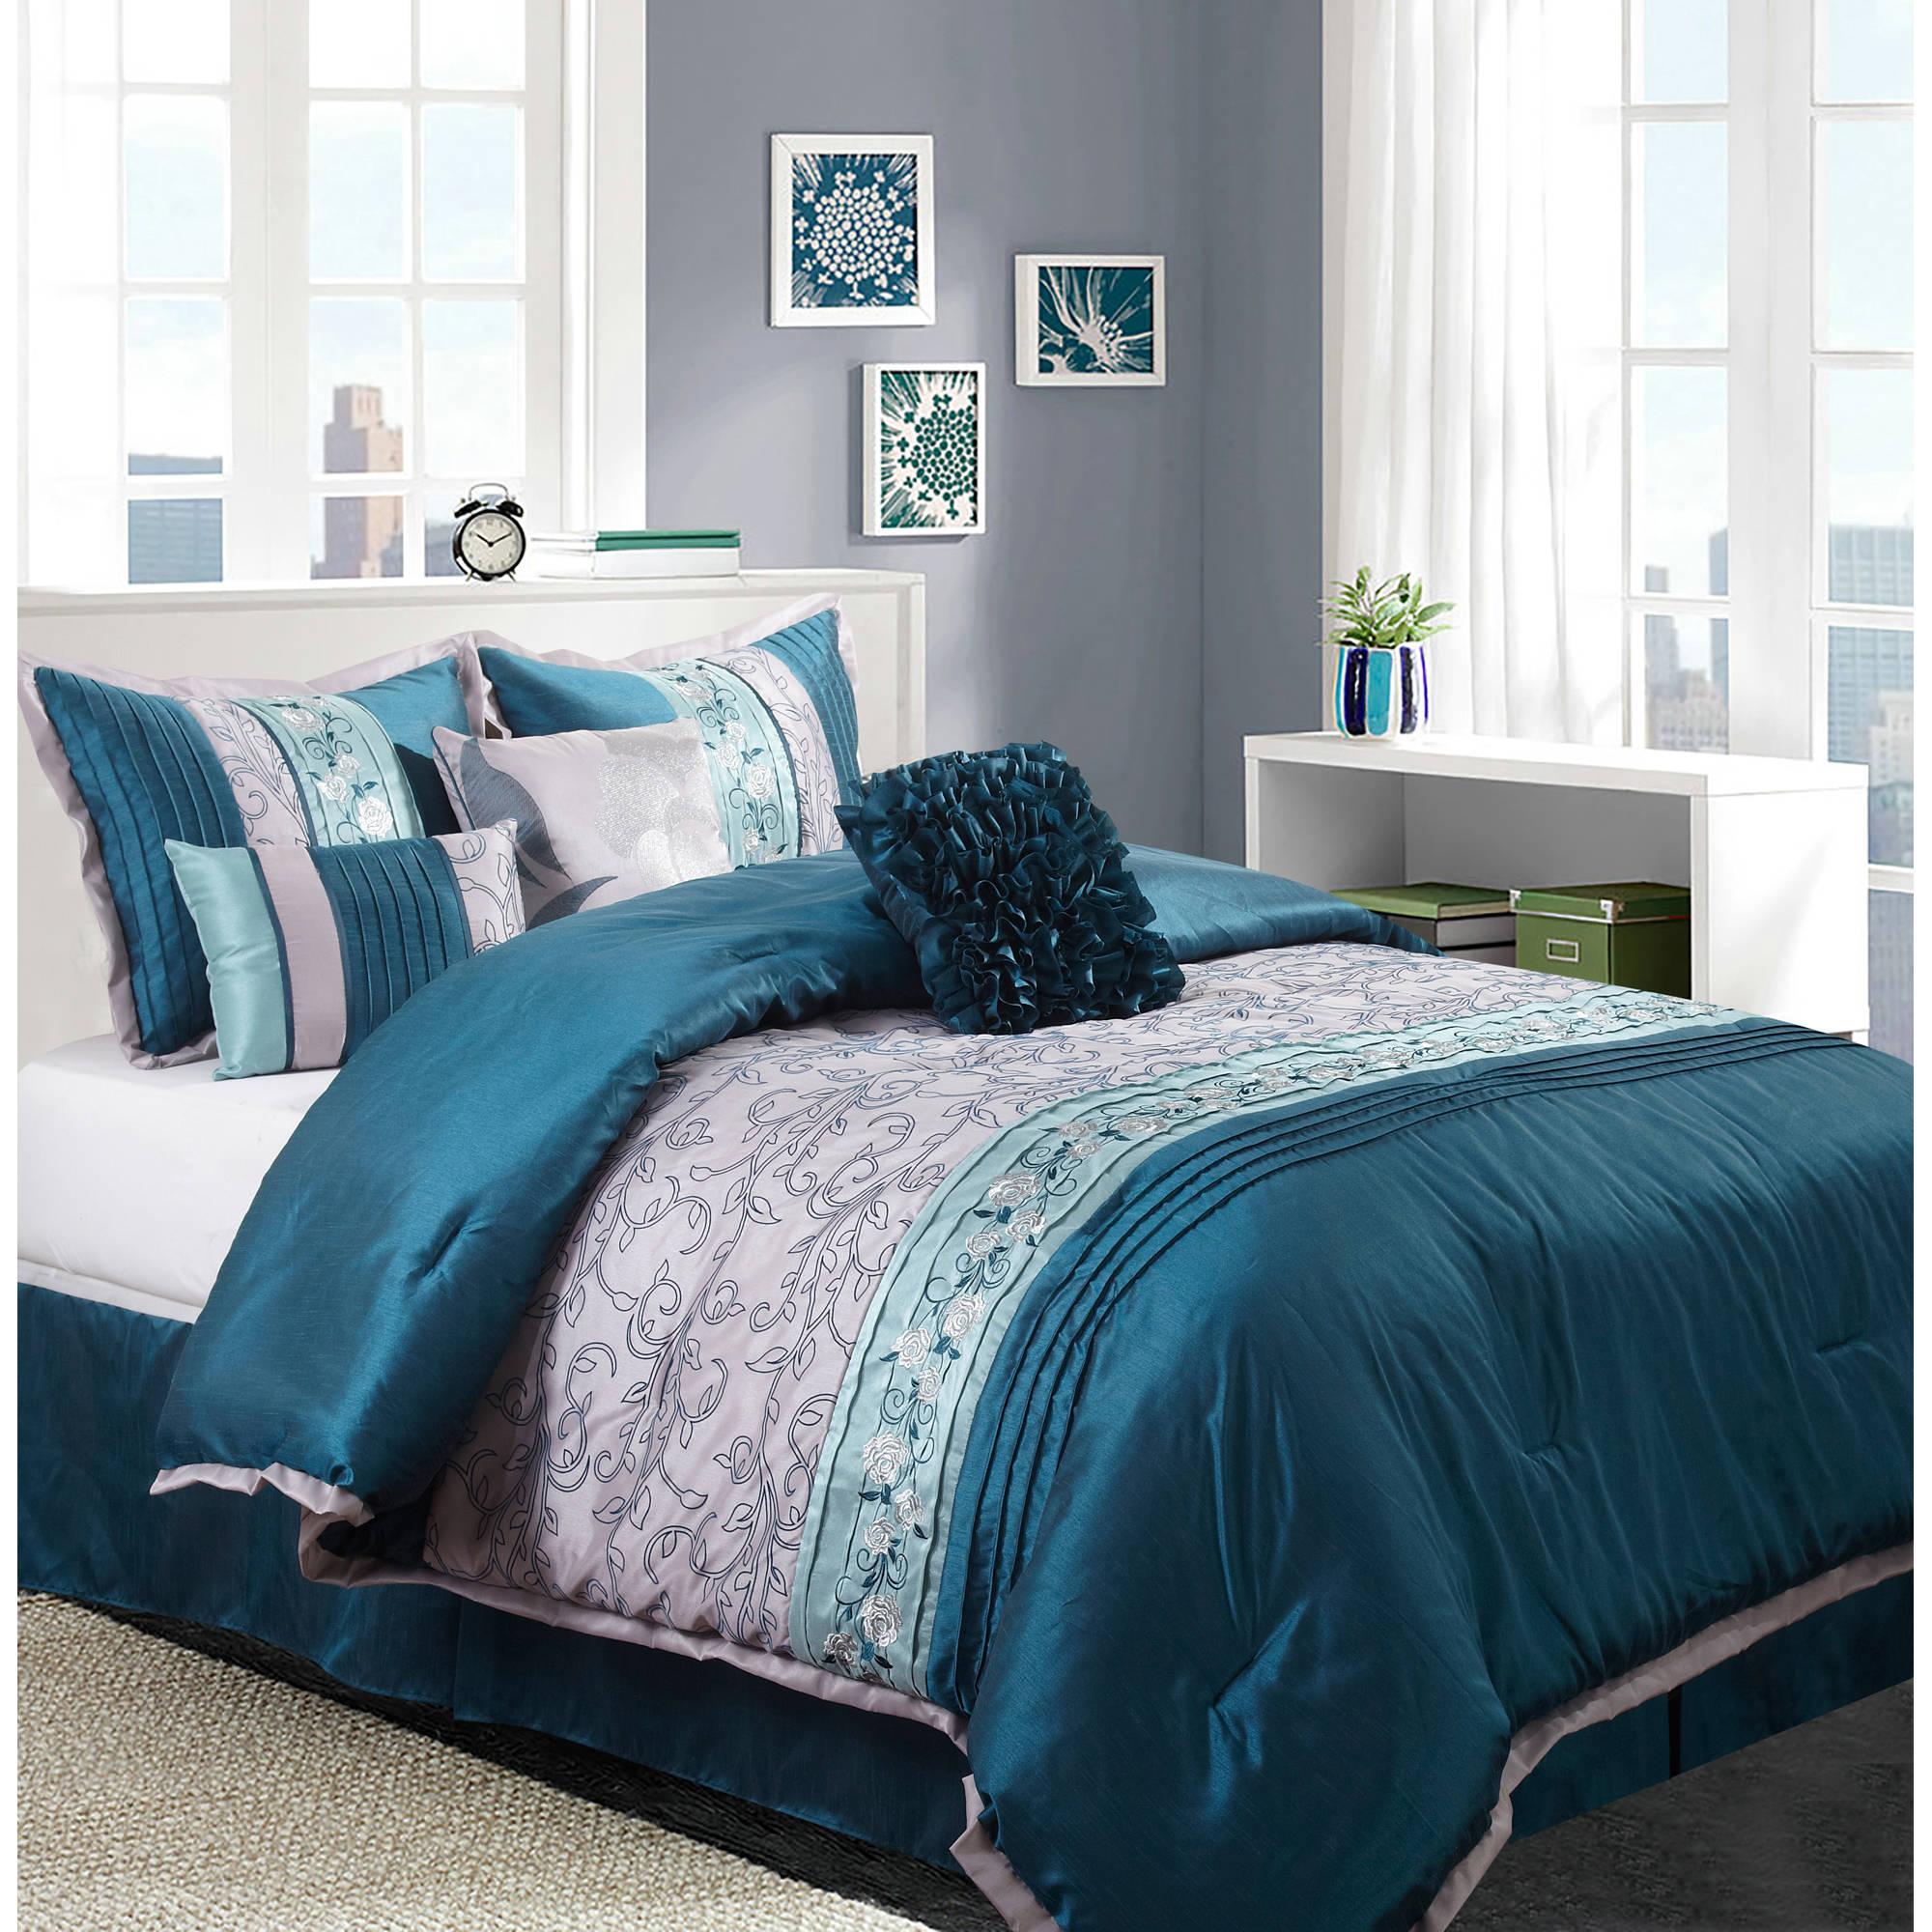 Nanshing Juliana Piece Bedding Comforter Set Walmartcom - Black and teal comforter sets